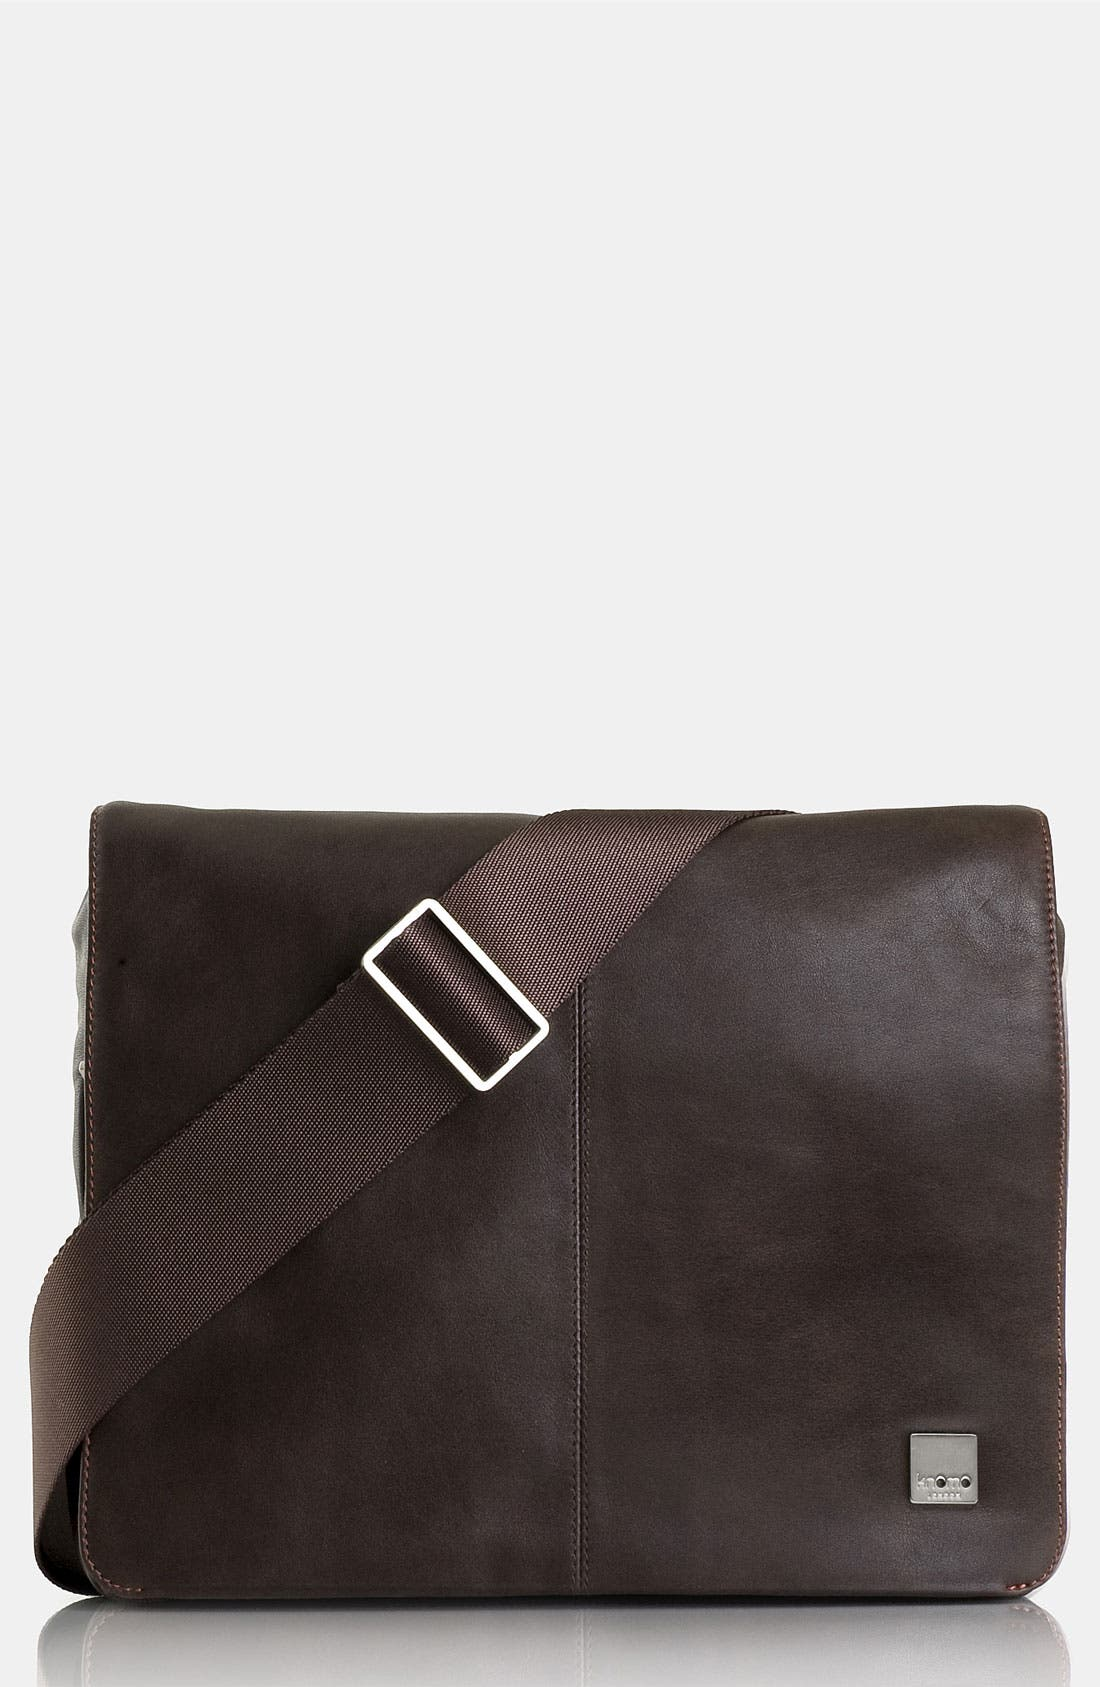 Main Image - KNOMO London 'Kilkenny' Messenger Bag (11 Inch)